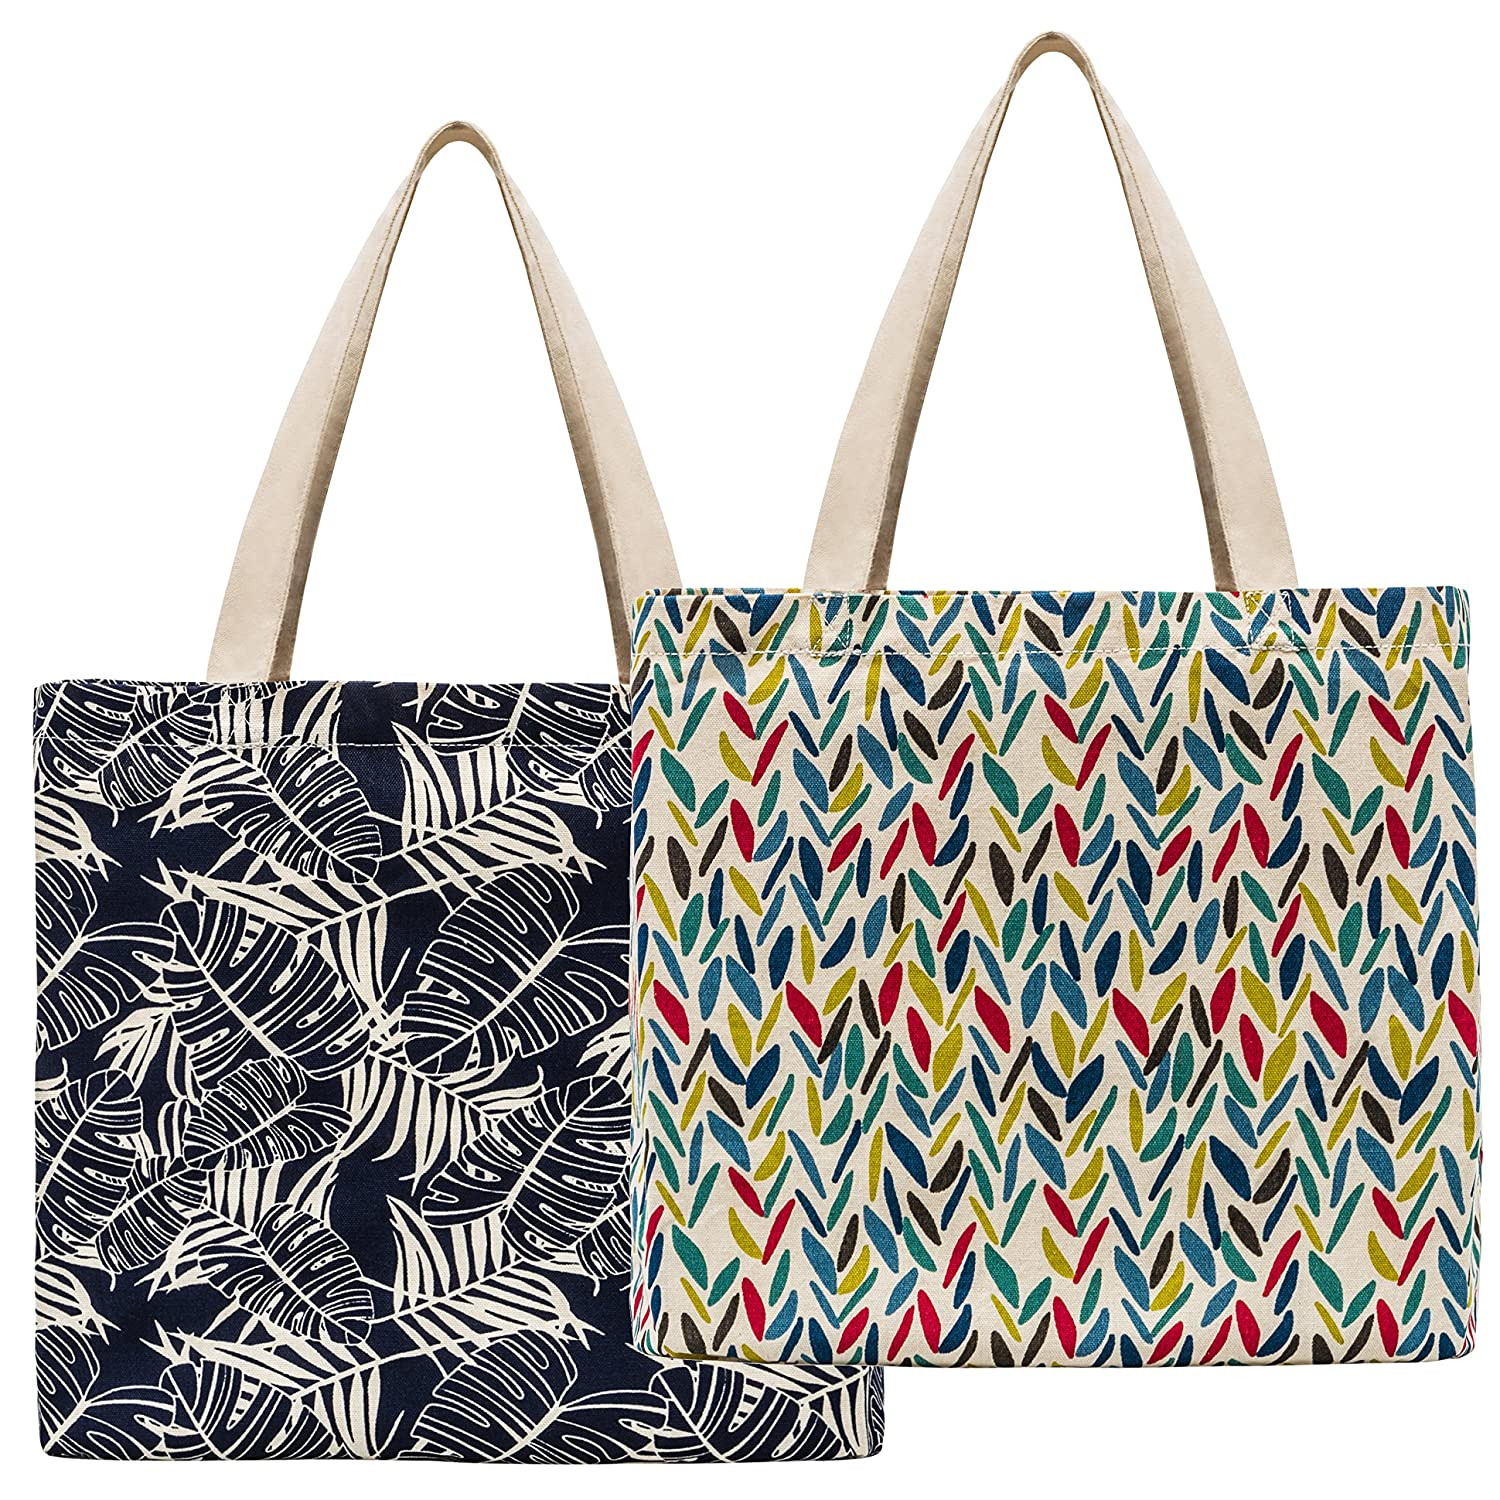 ee6192fd7ab36 Amazon.com: Planet E Reusable Canvas Tote Bags - Made In USA Fashionable  Perfect for Shopping or Groceries (Pack of 2): Kitchen & Dining